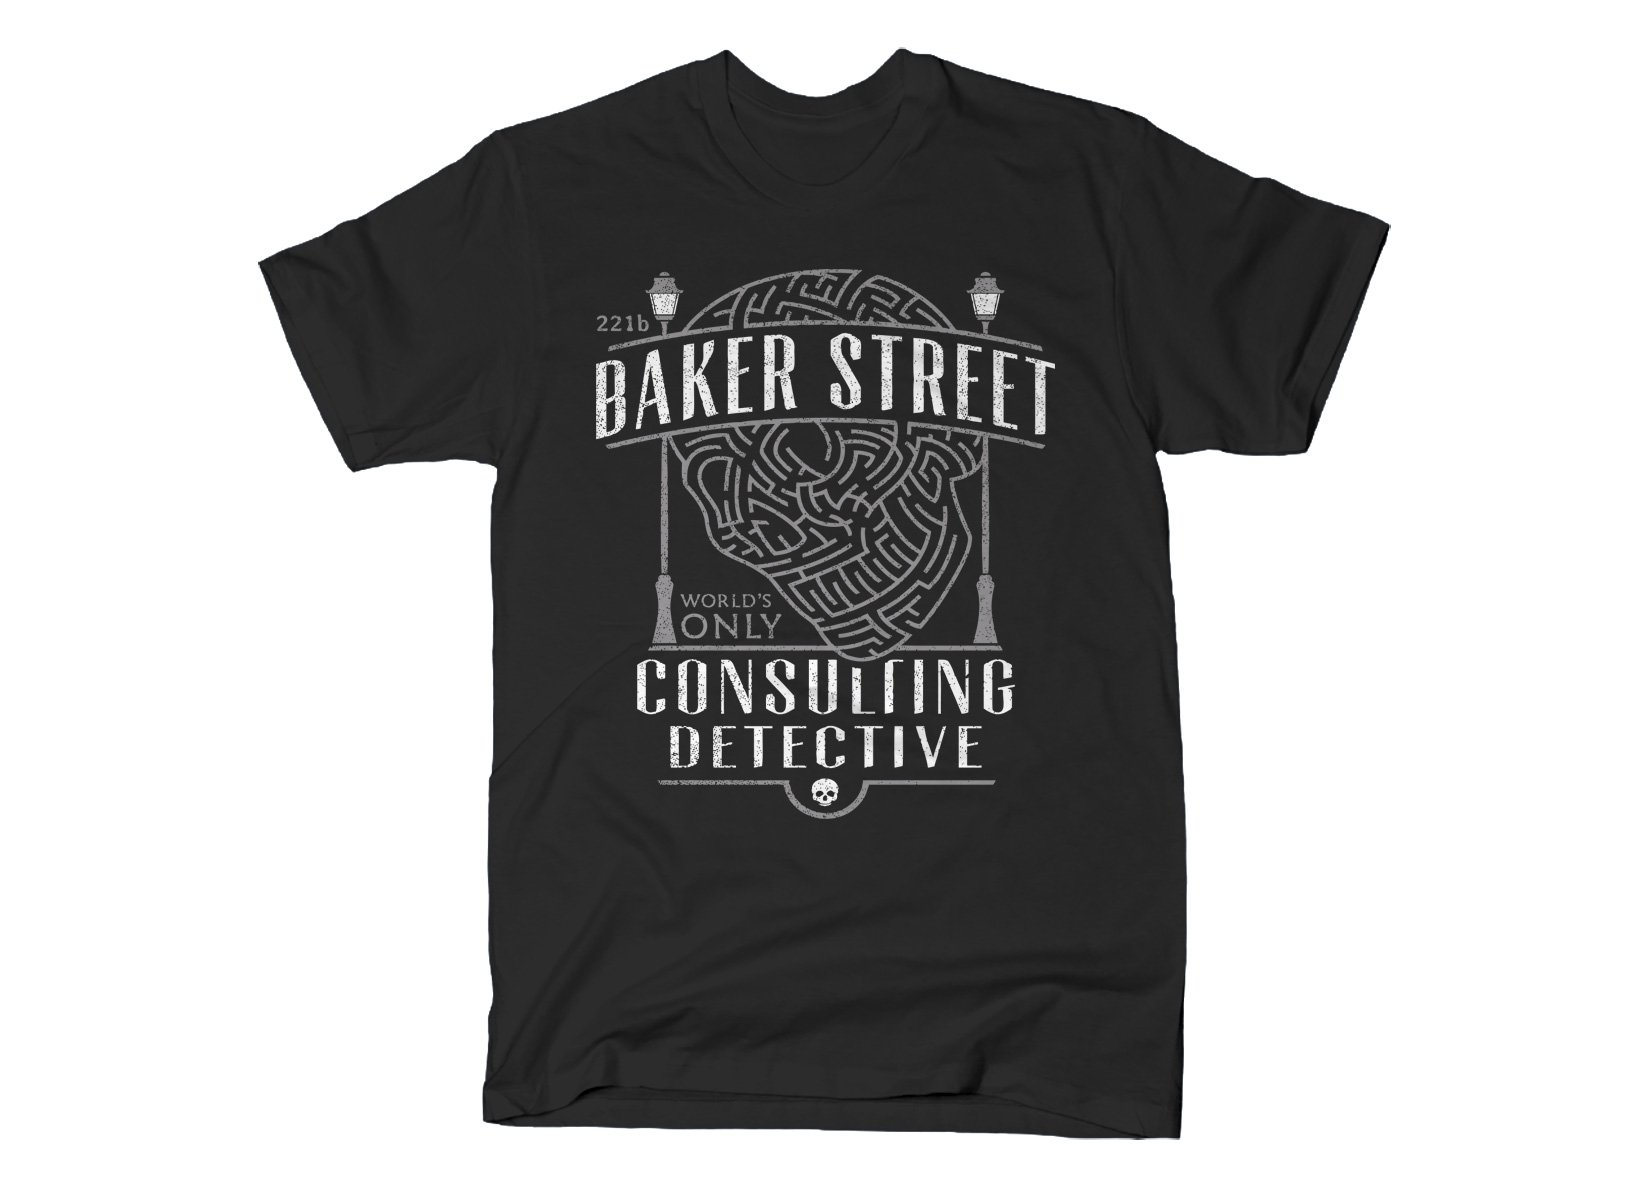 Baker Street Consulting Detective on Mens T-Shirt